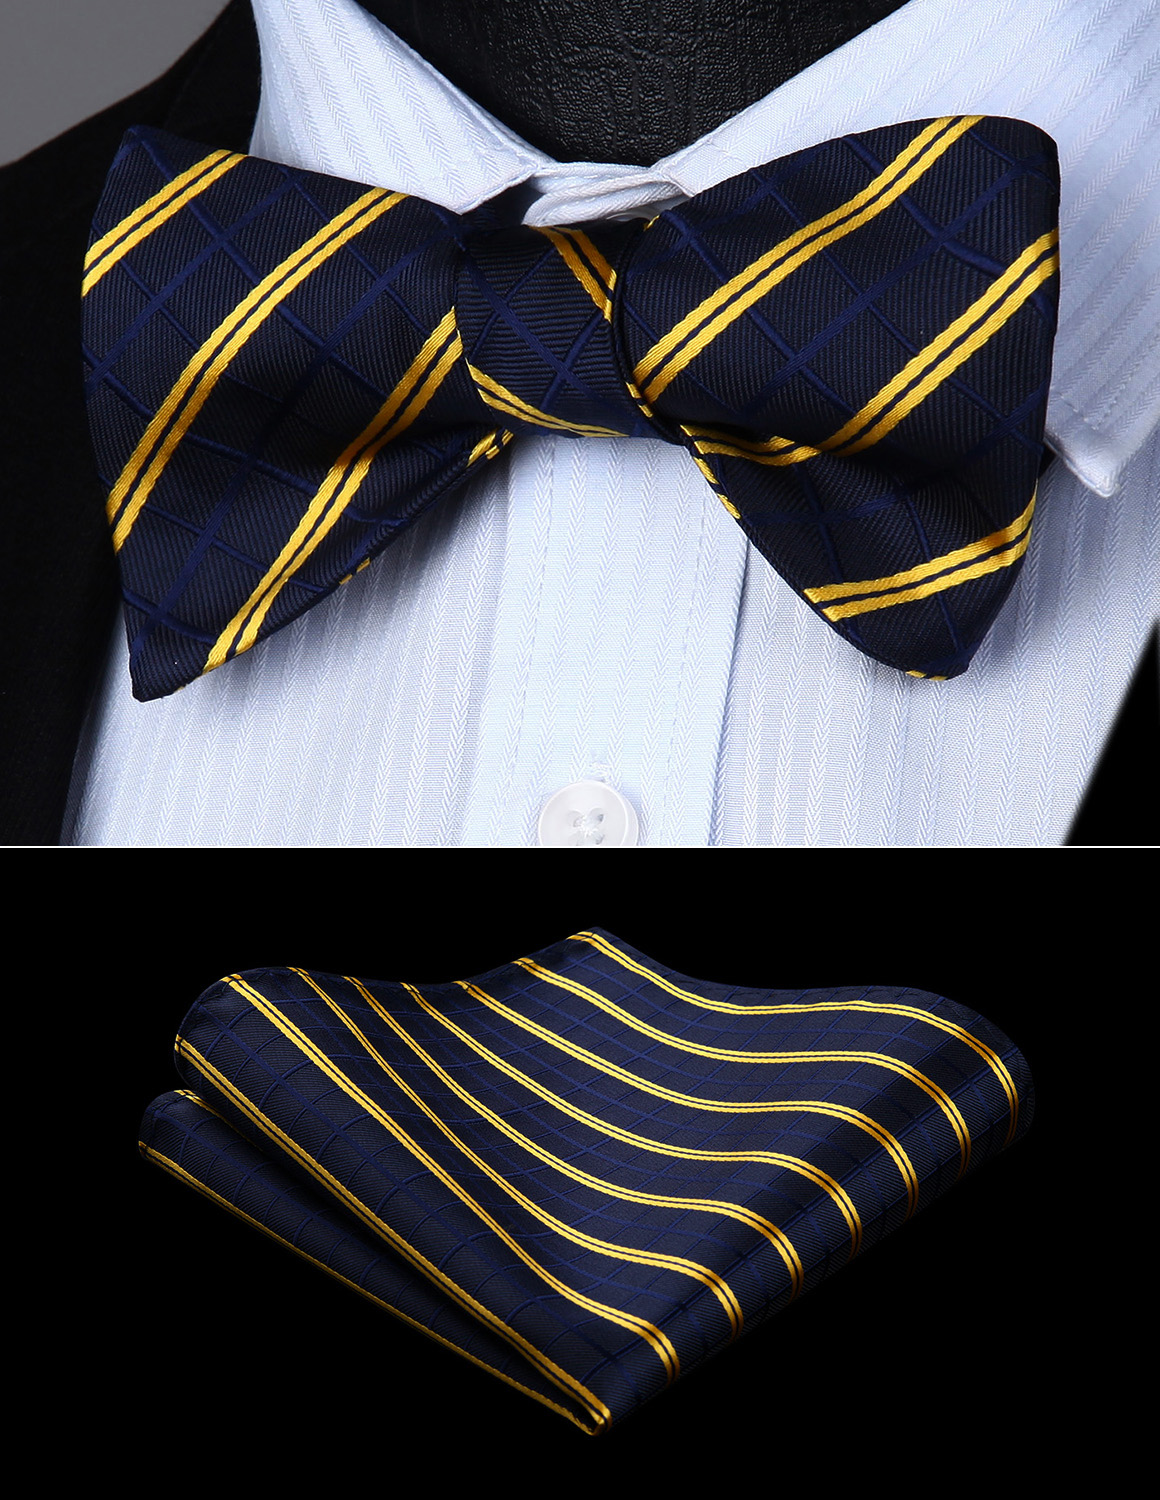 Bow Tie Handkerchief Set Men Woven Navy Blue Yellow Striped Self Bow Tie Pocket Square Set#BC816VS